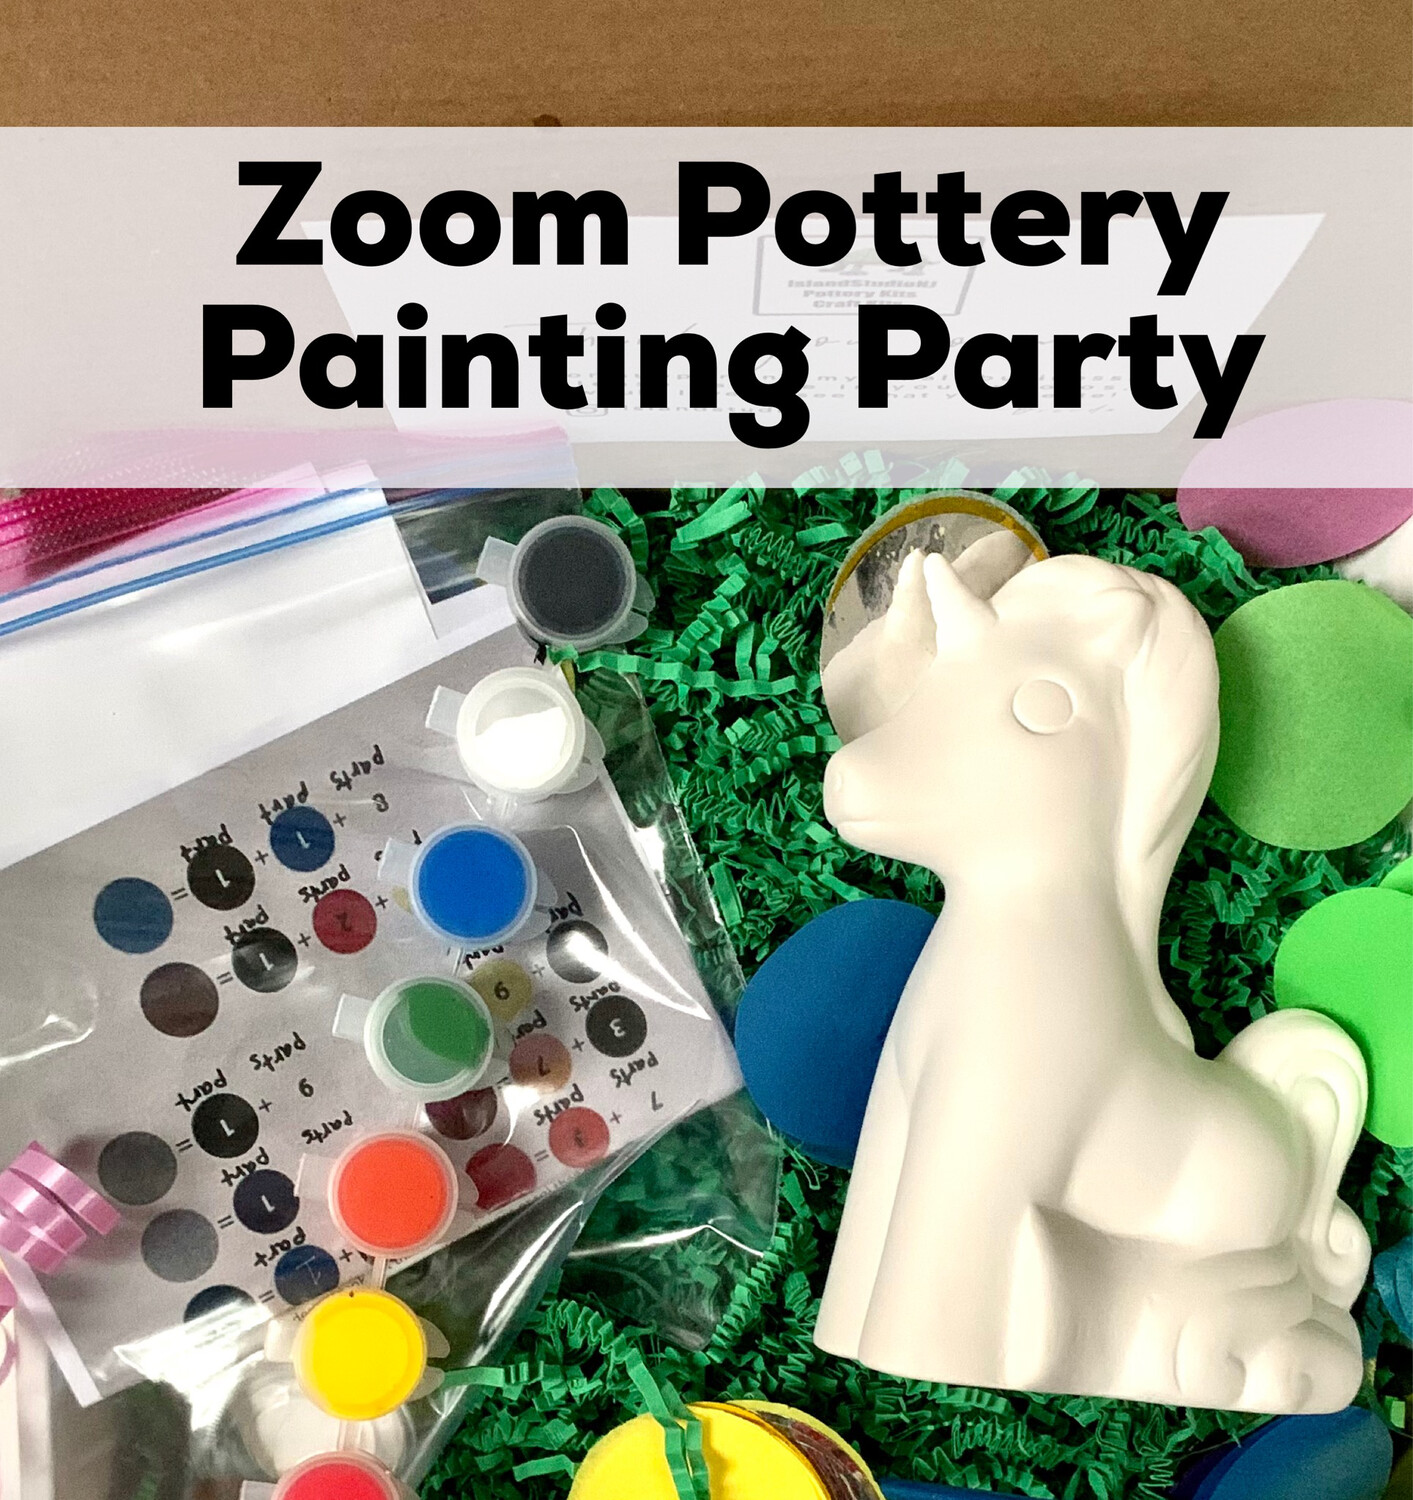 Zoom Pottery Painting Party May 18, 2021 from 3-4:30pm - Free With Pottery Purchase